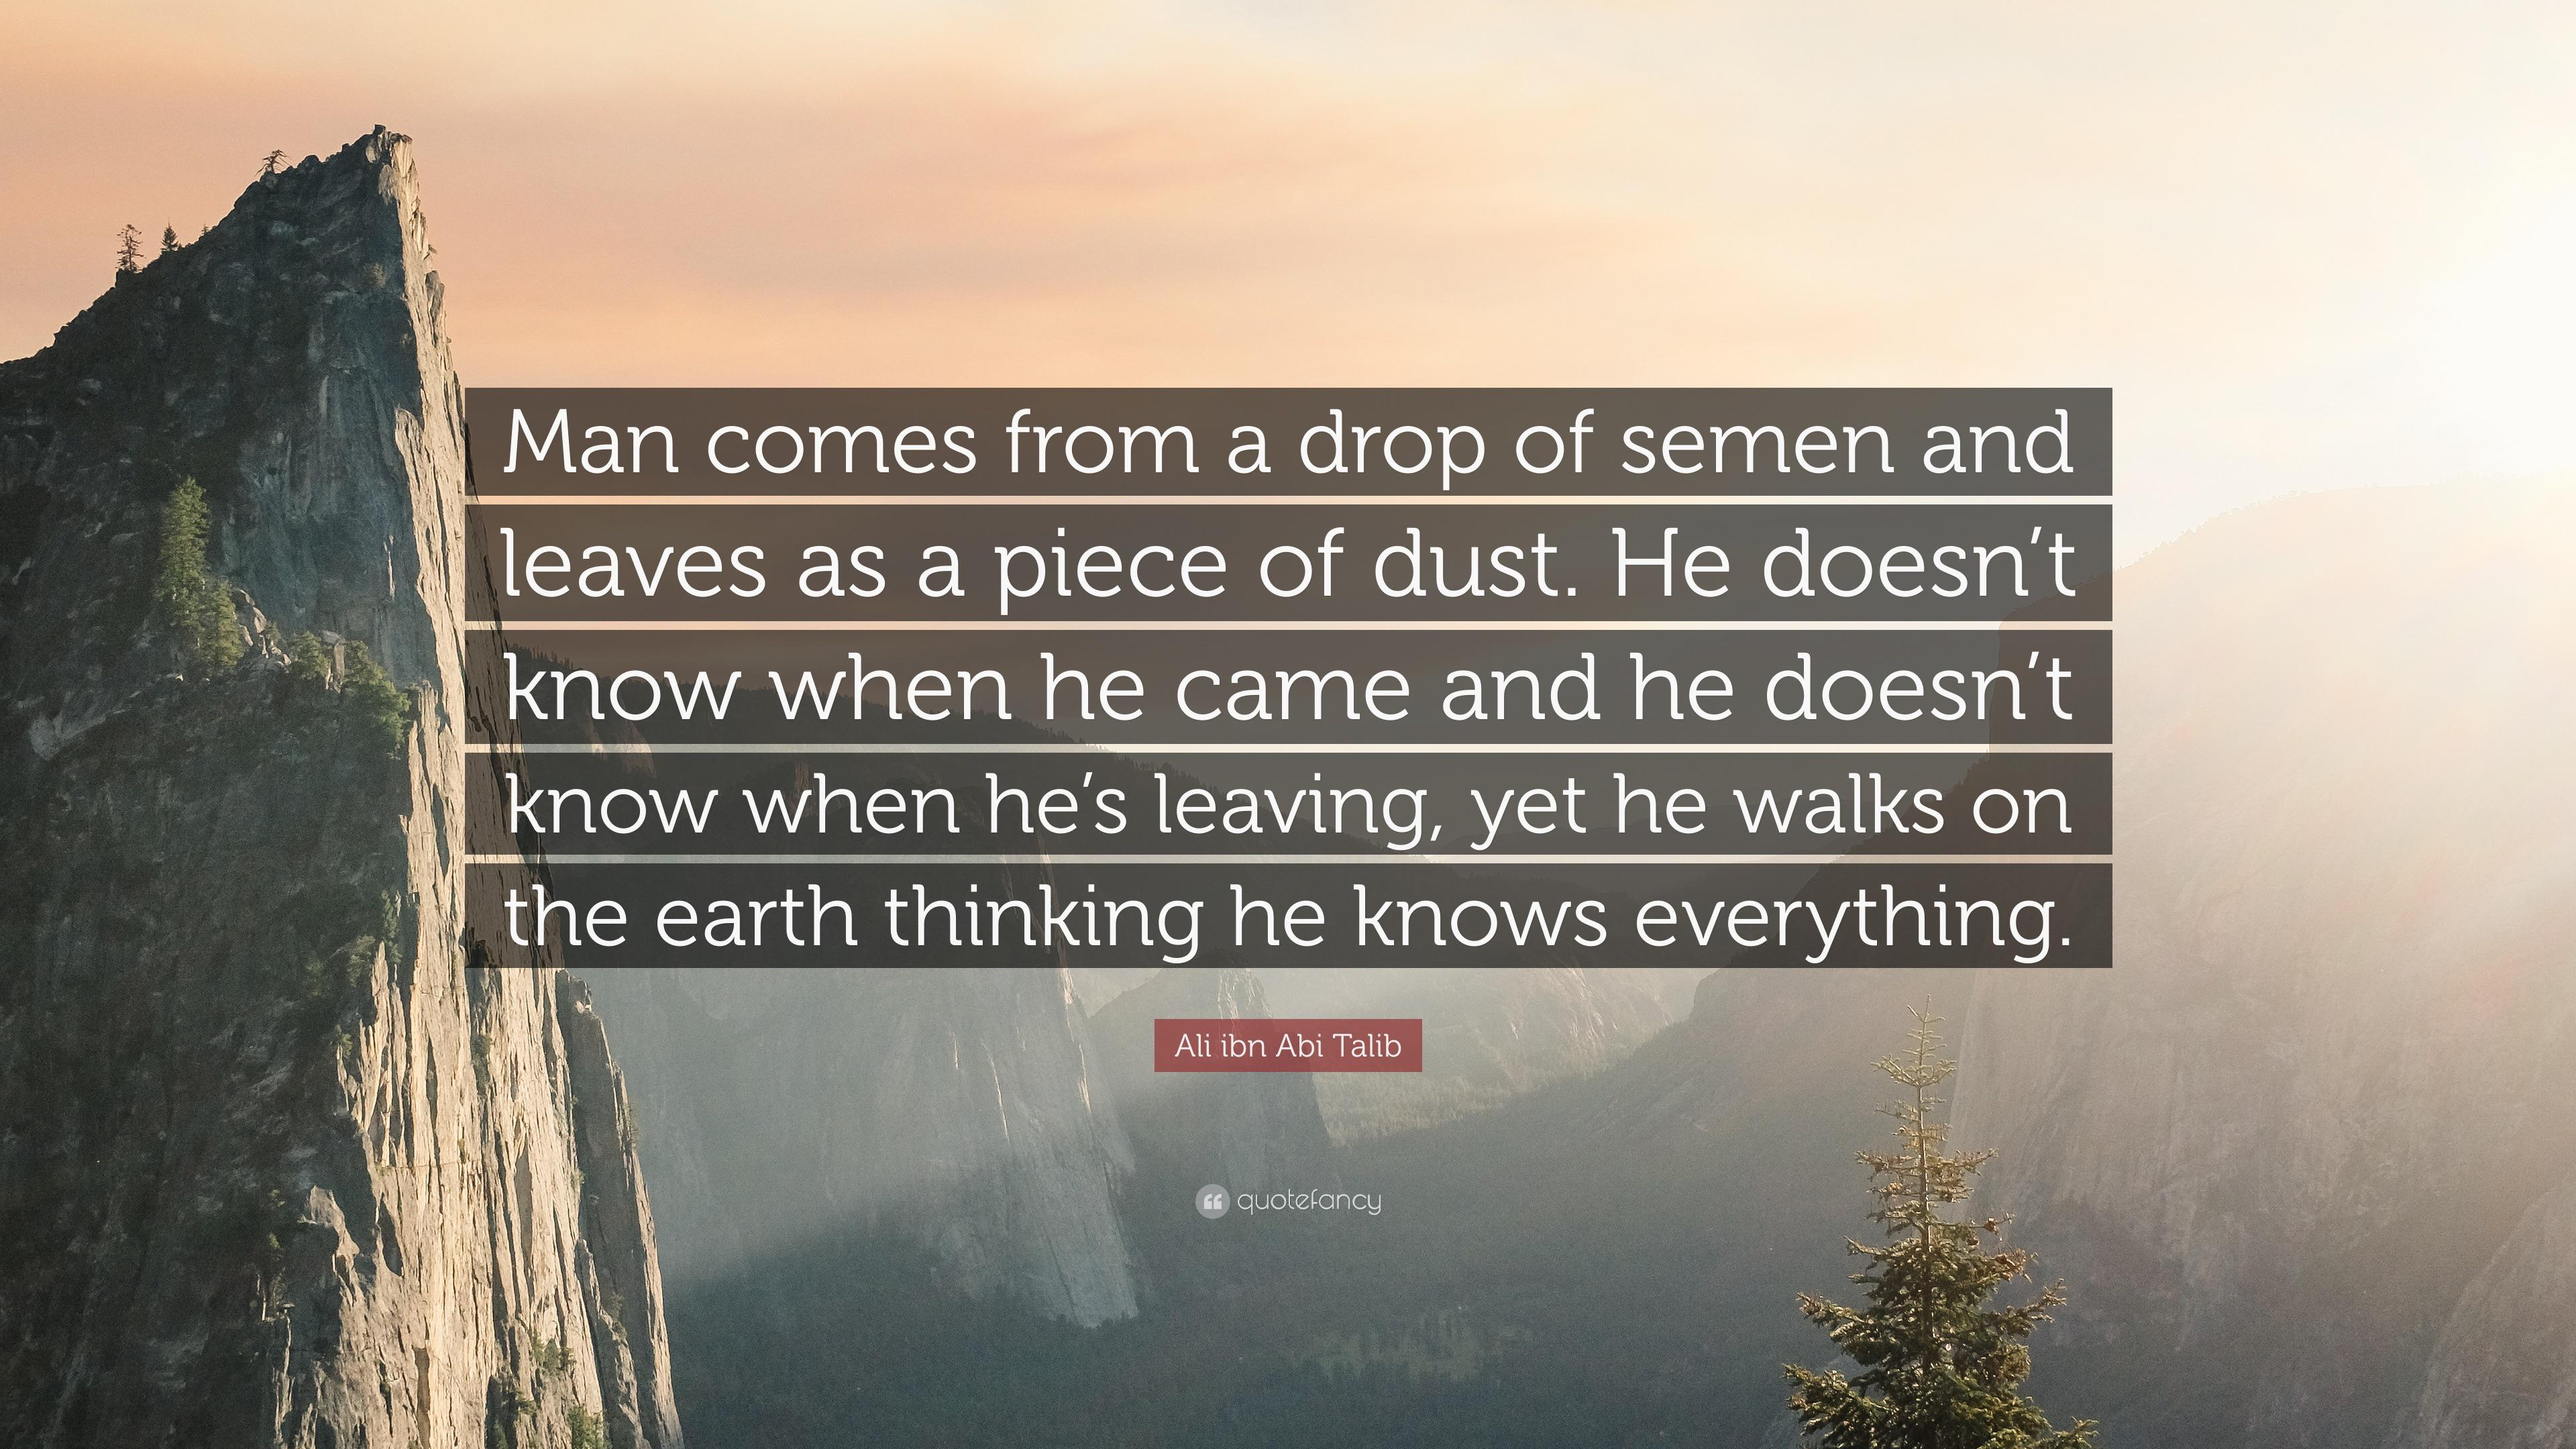 """Man comes from a drop of semen and leaves as a piece of dust. He doesn't know when he came and he doesn't know when he's leaving, yet he walks on the earth thinking he knows everything."" — Imam Ali (a.s) (3840×2160)"